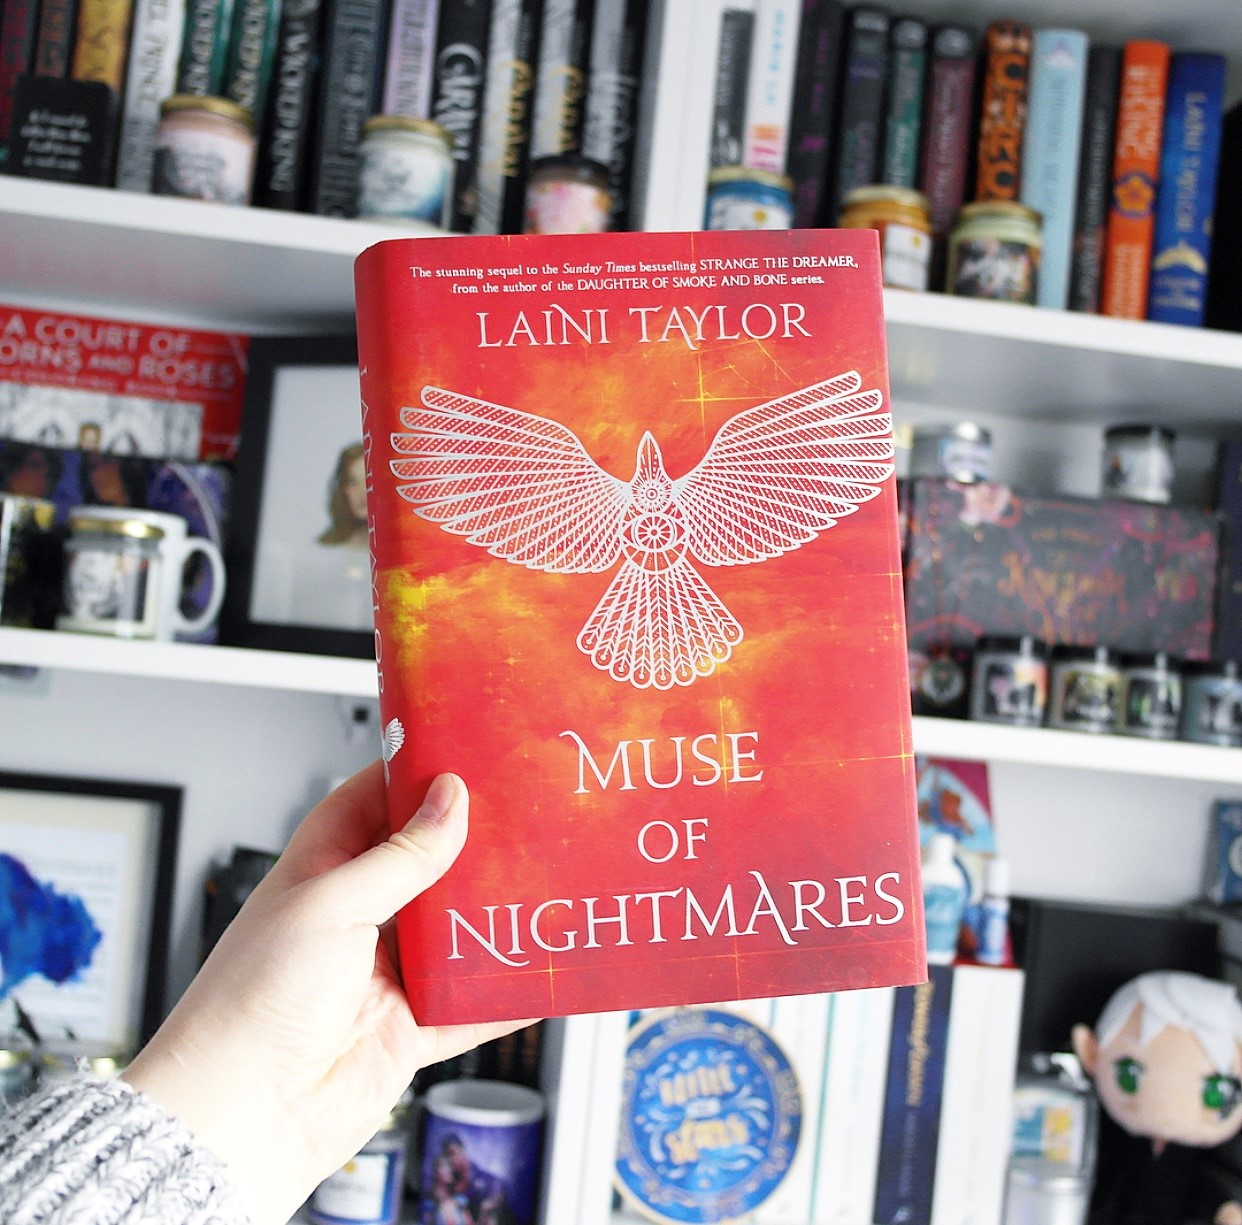 The red hardback edition of Muse of Nightmares held in front of Amy's bookcase, which is filled with books.